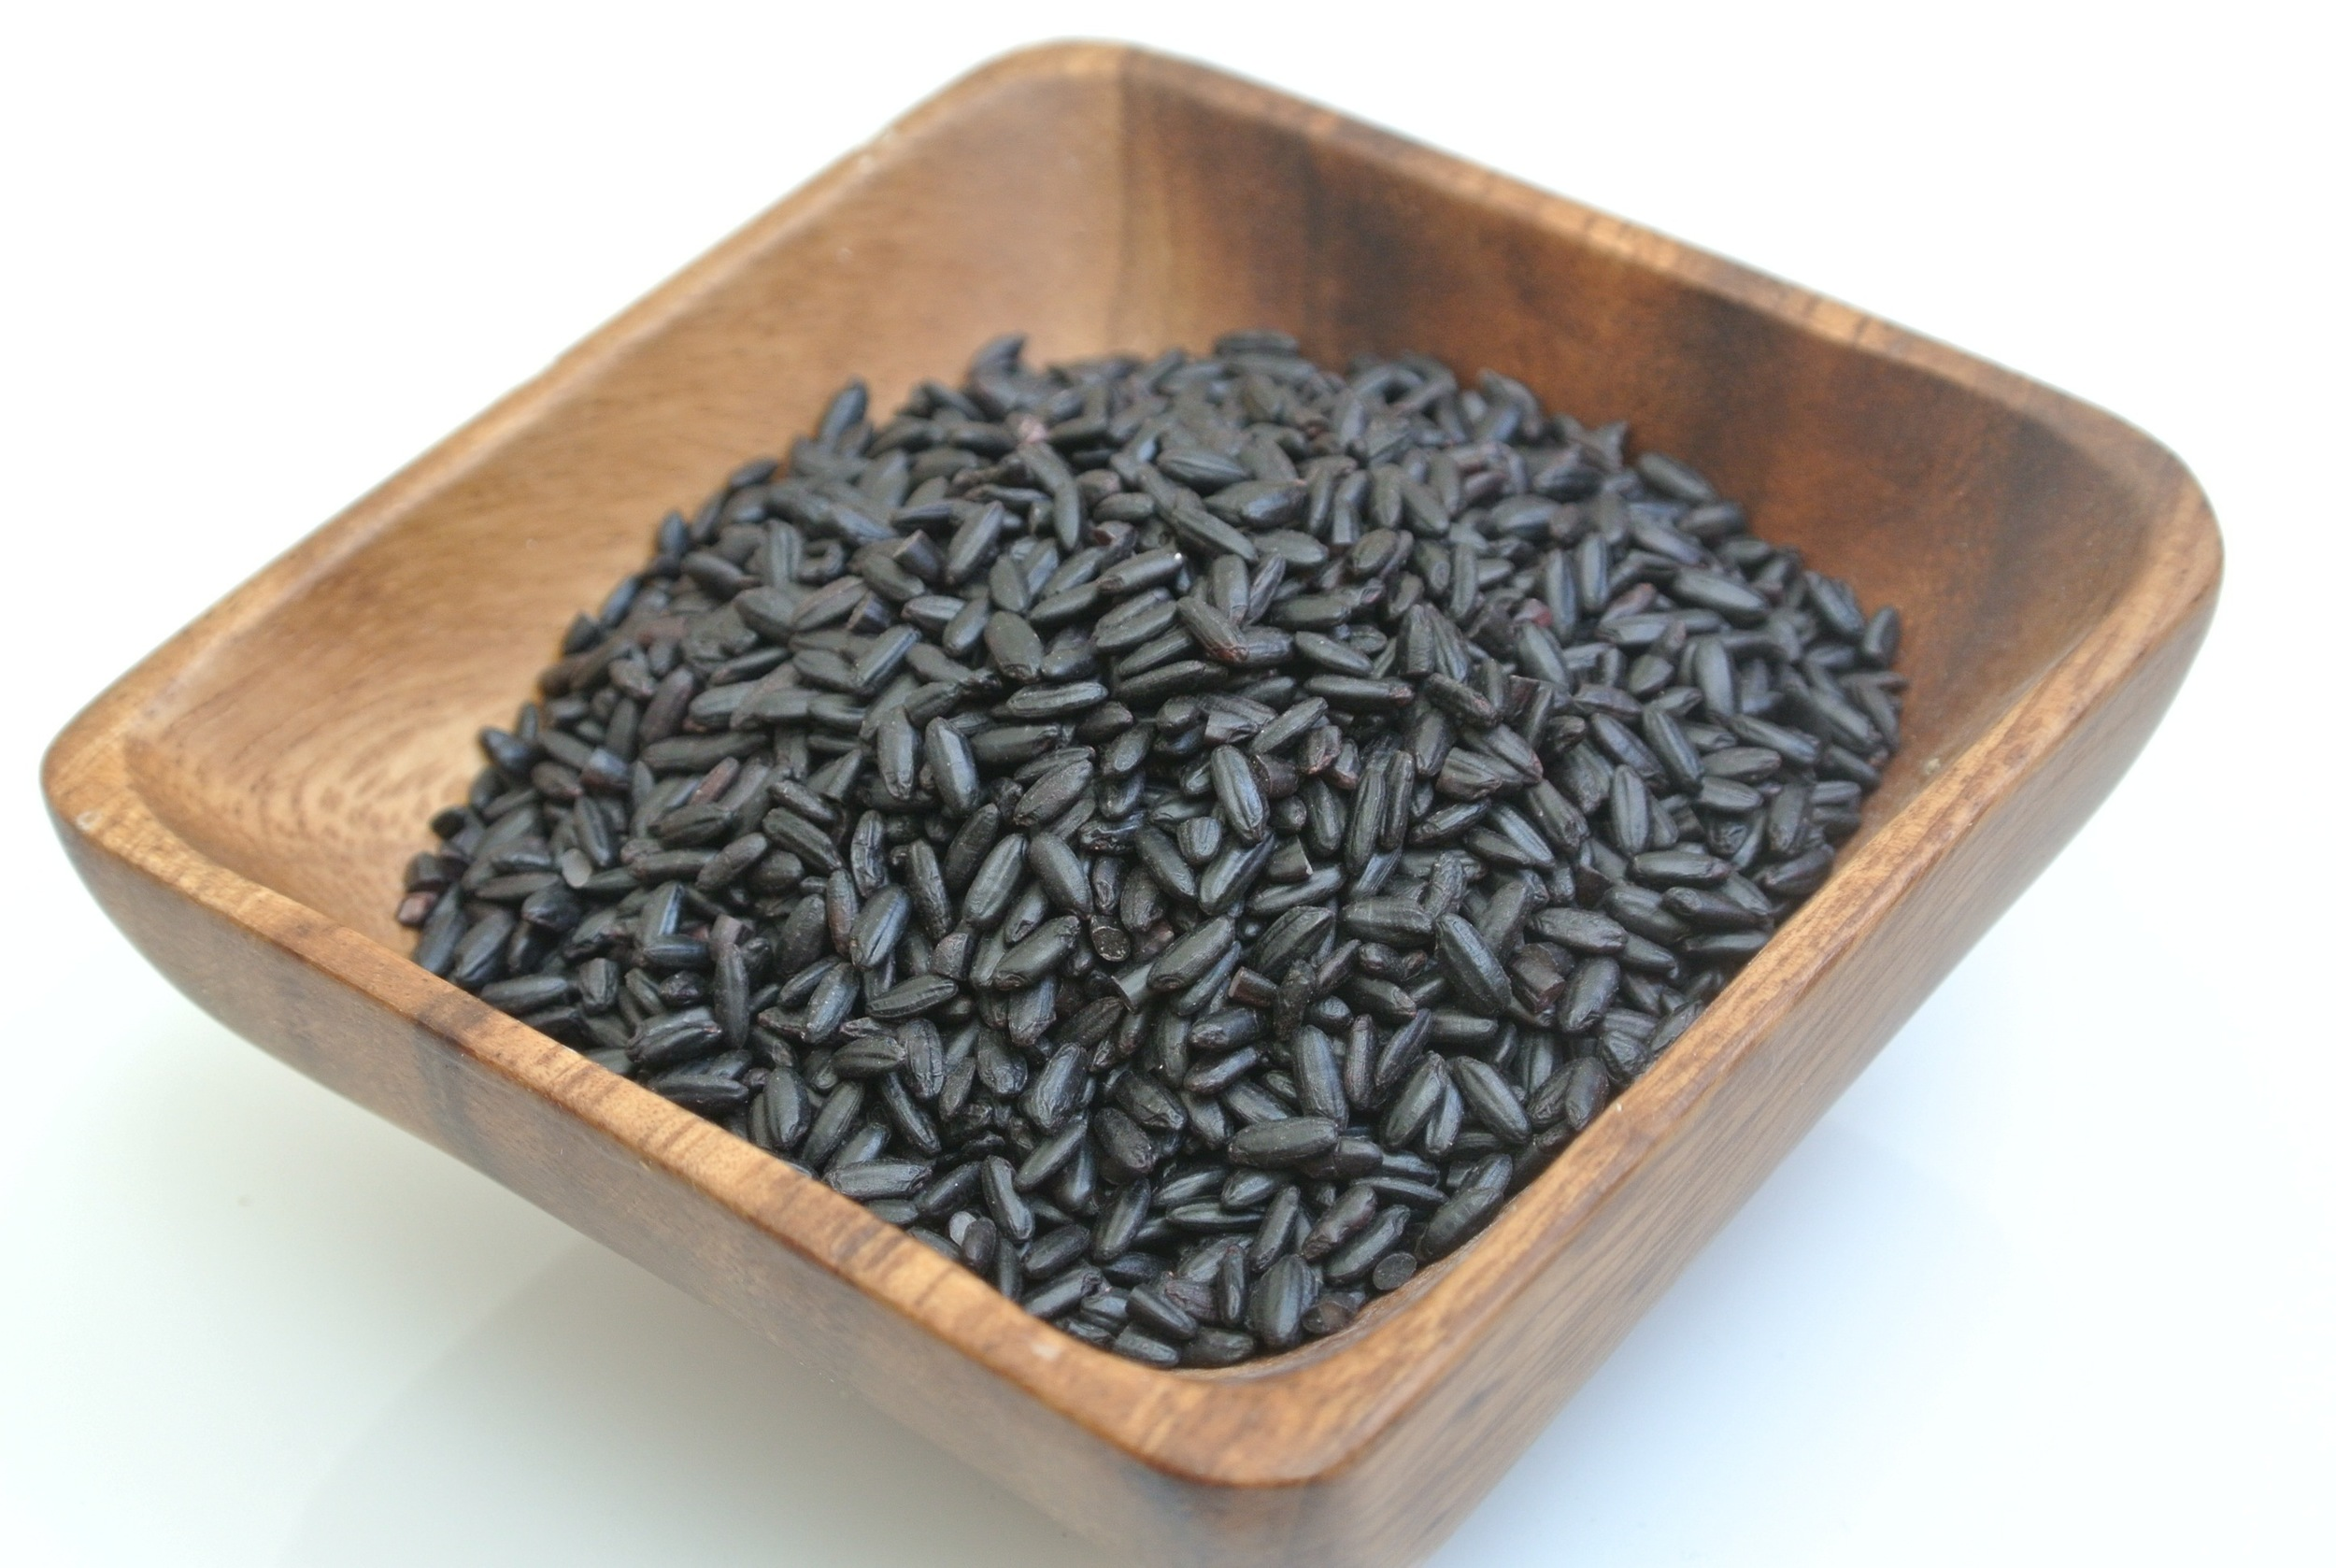 Black Rice      is one of the ancient rices that  the grain was served exclusively by the Emperors of China to bring youth and longevity.